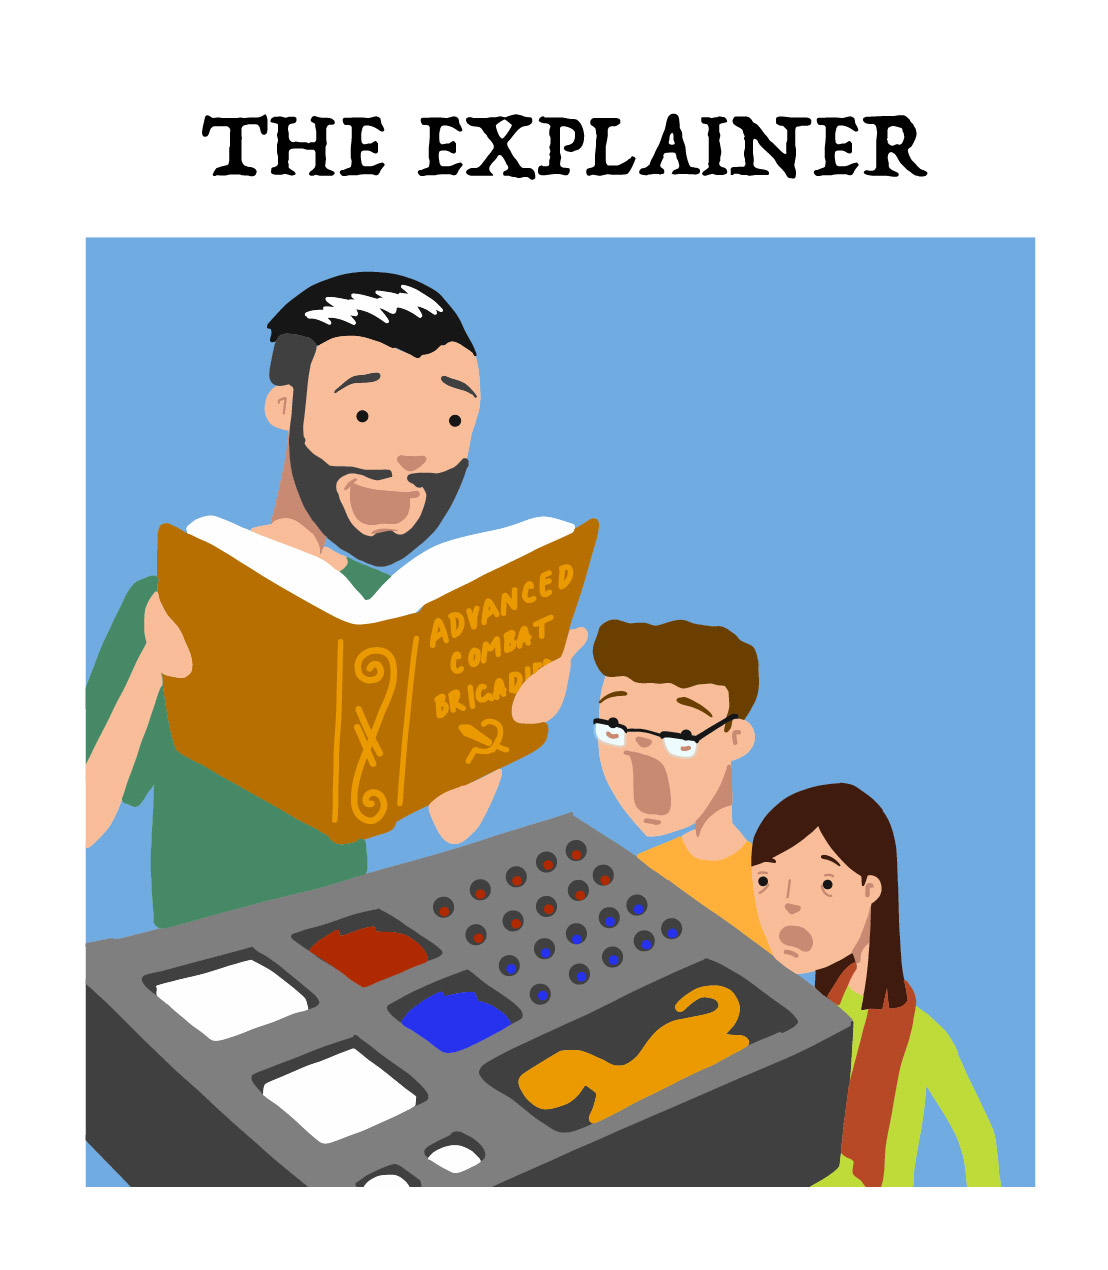 the explainer, type 9 of the board game player types